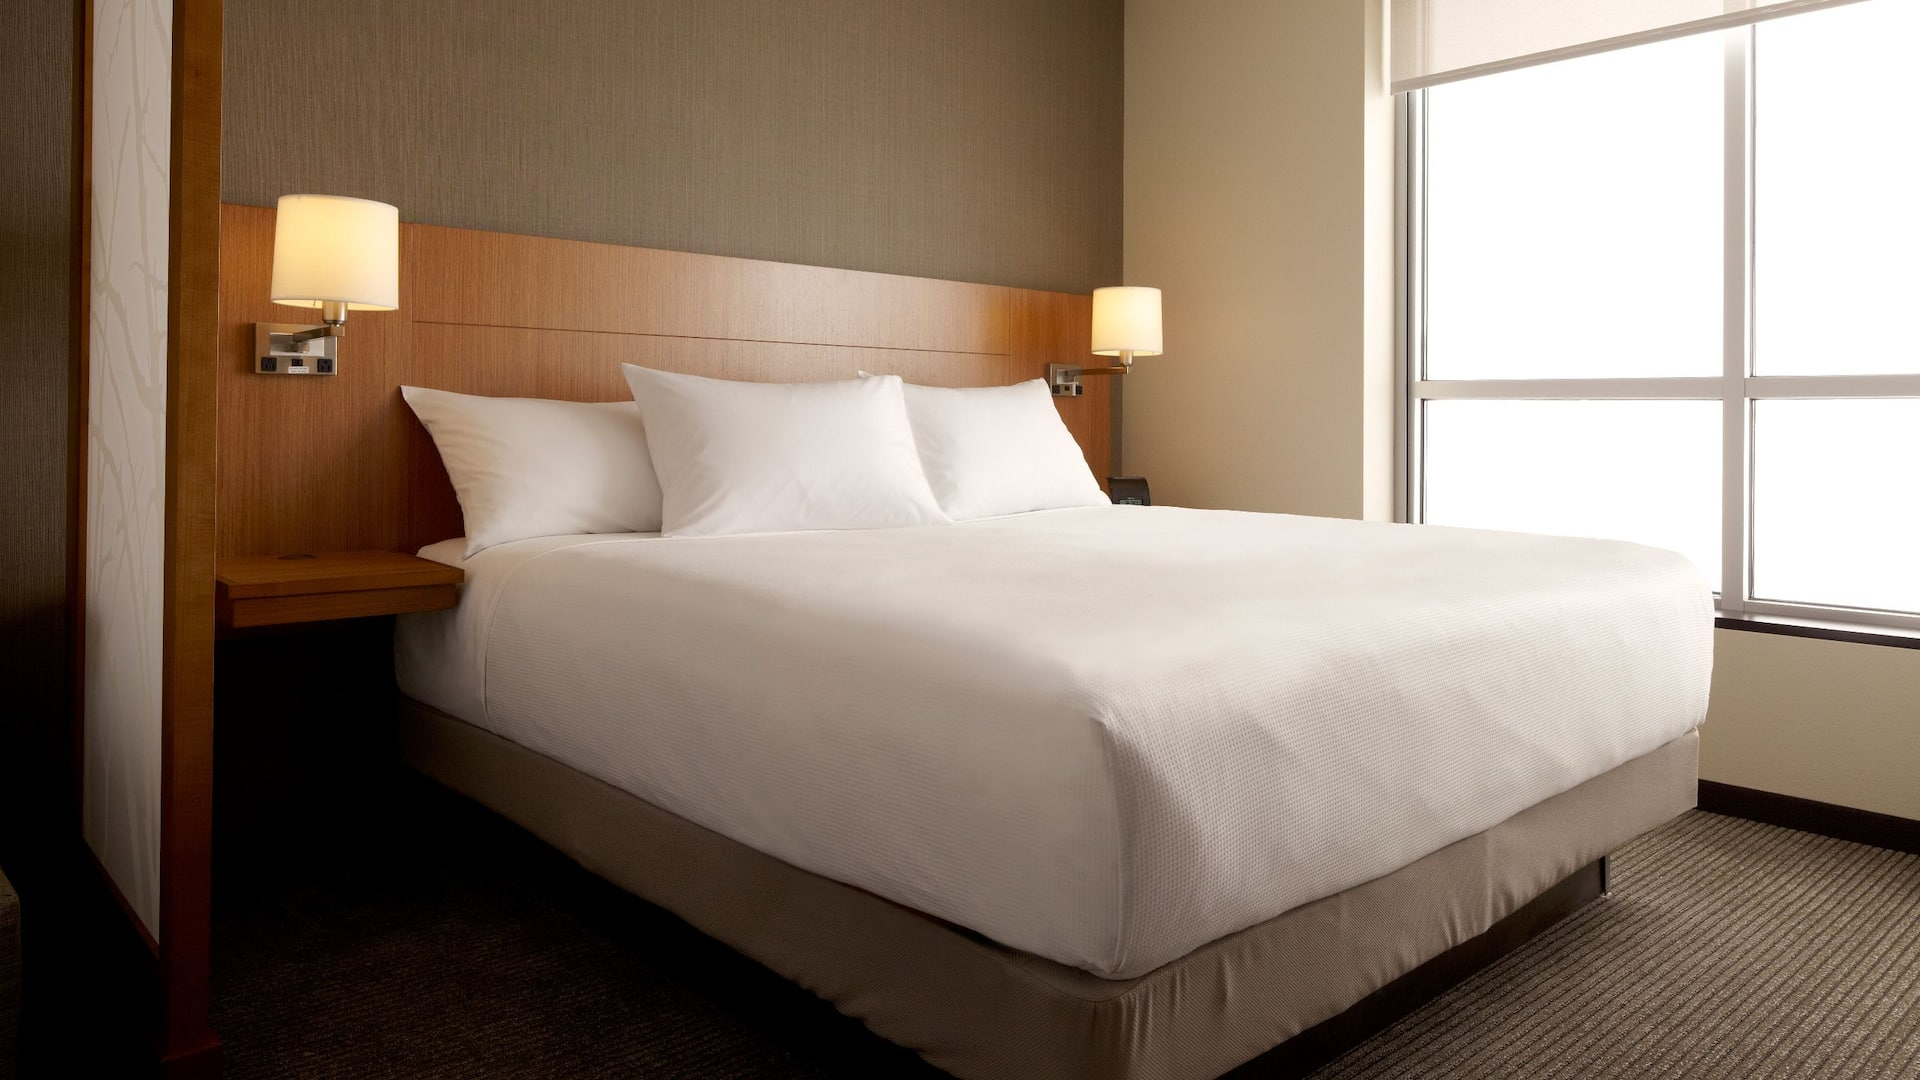 Hyatt Place King Bed